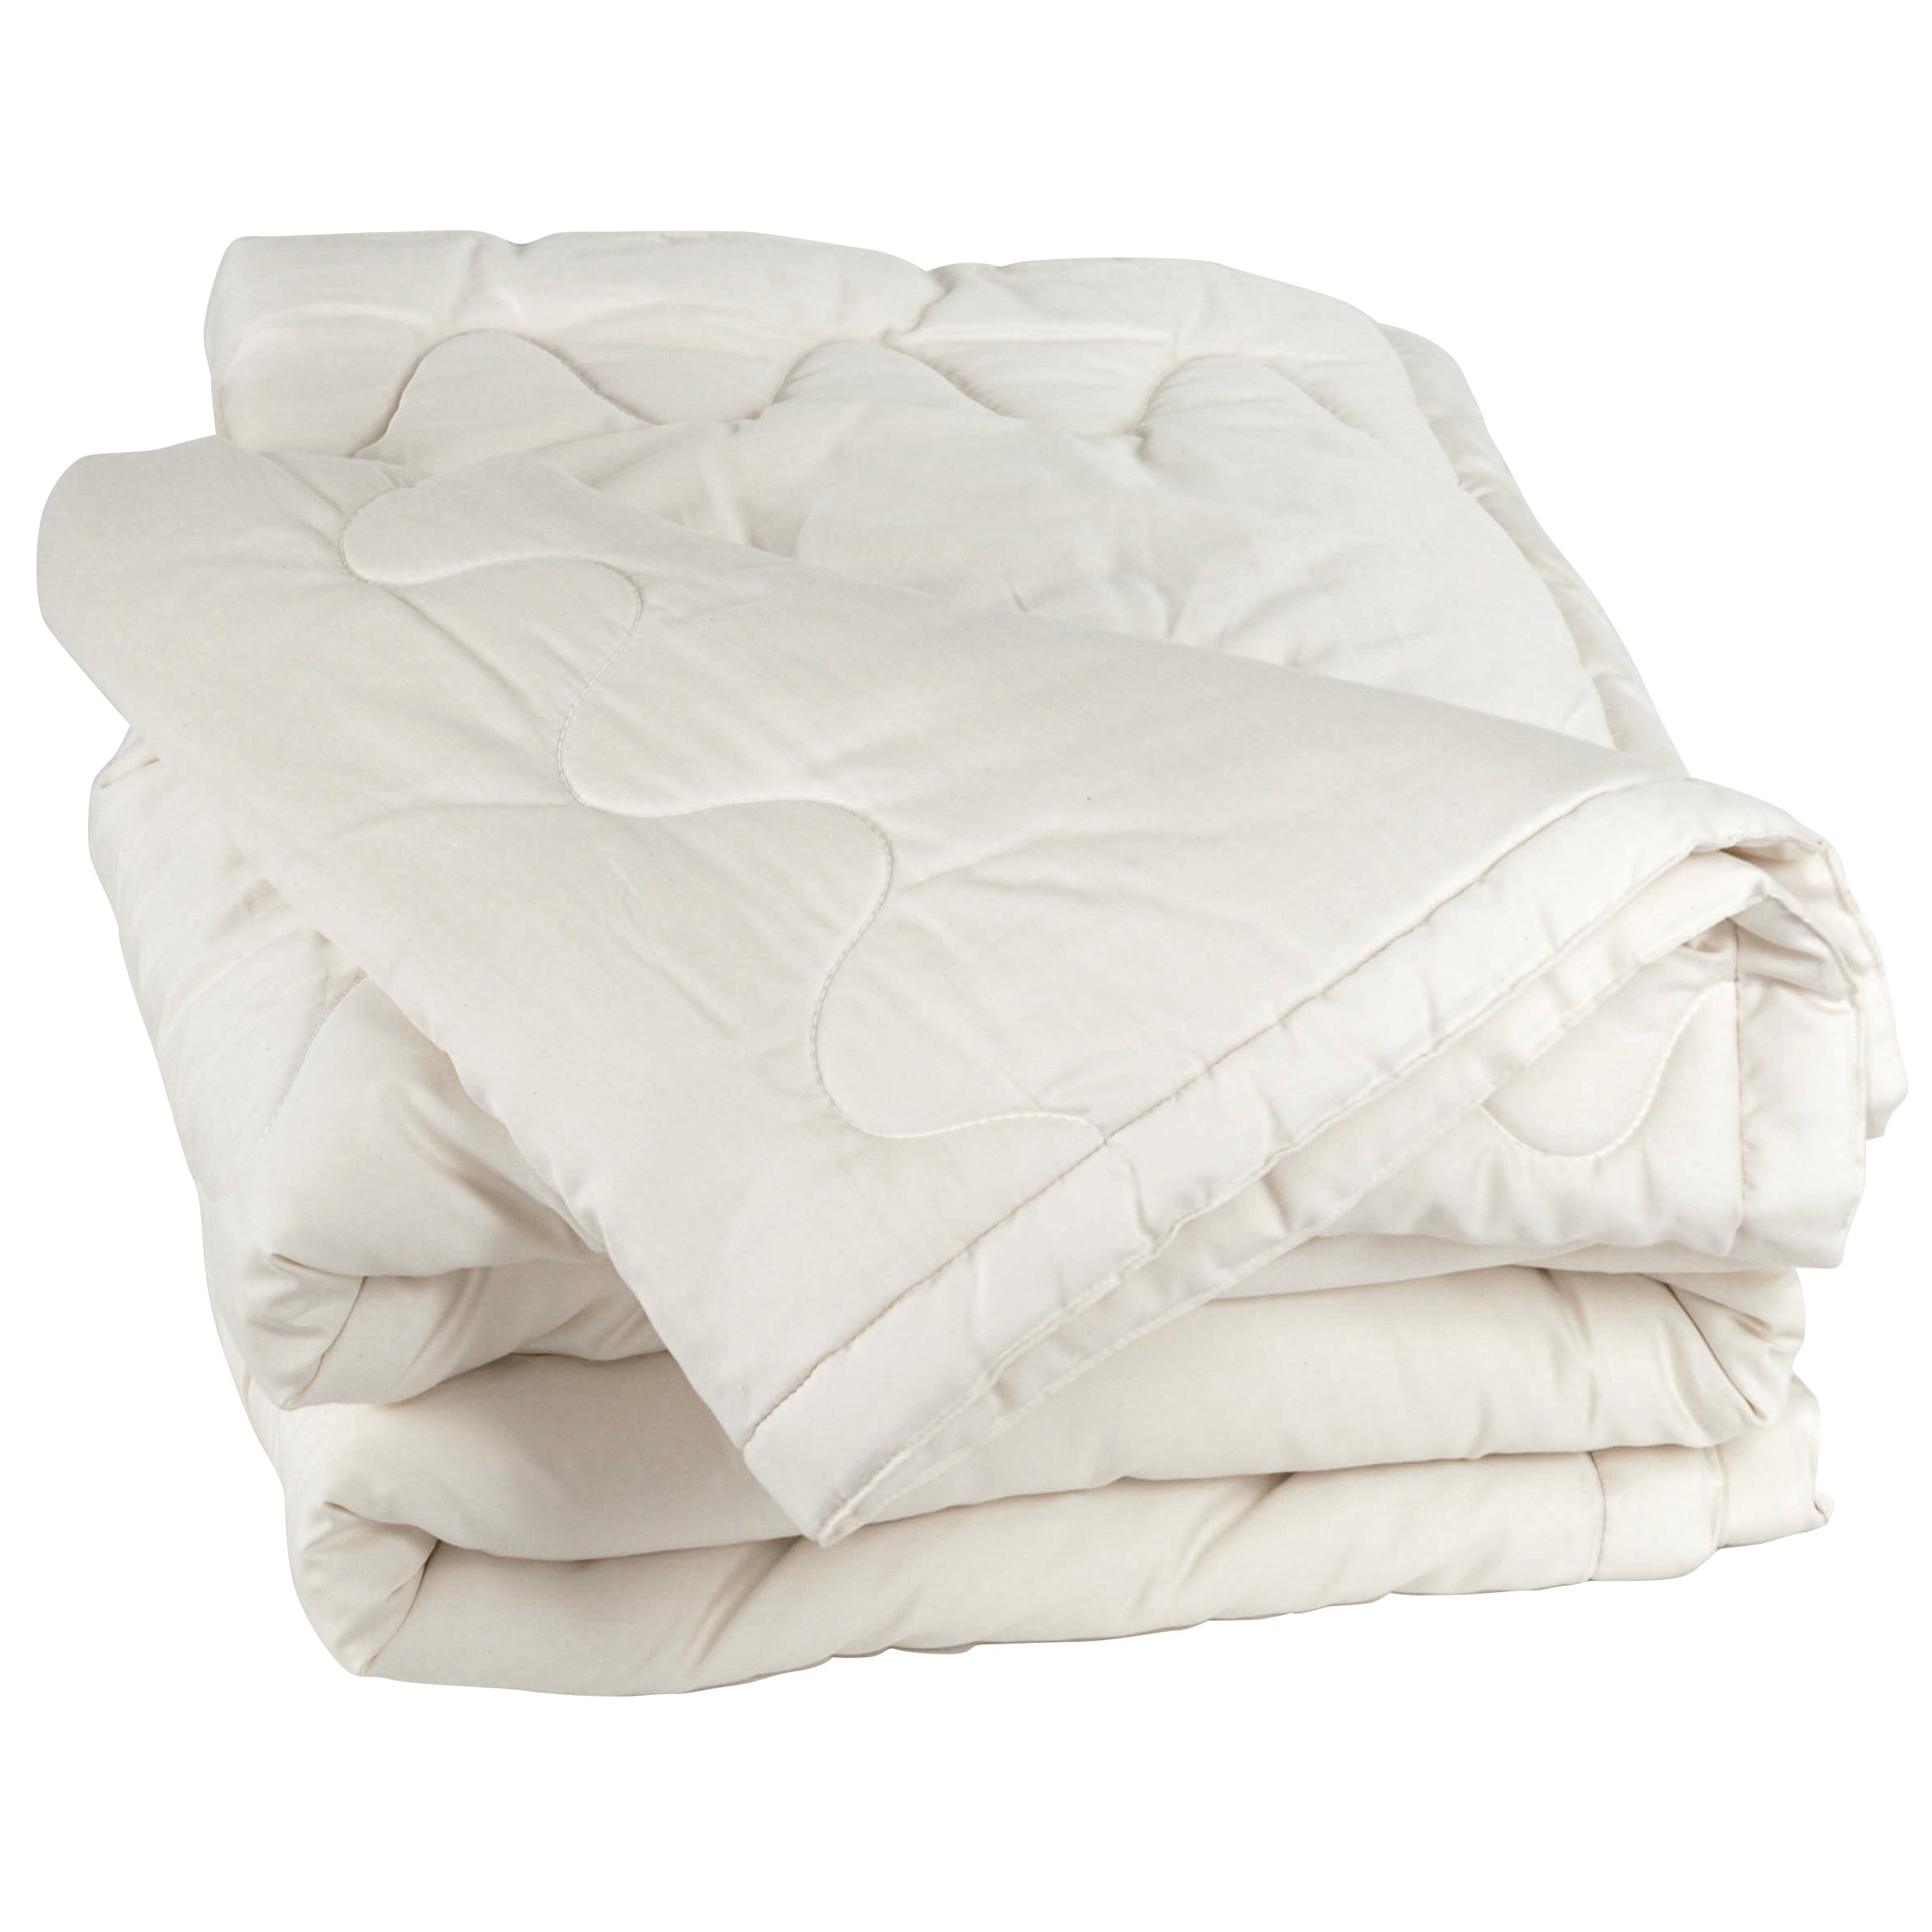 Certified Organic Wool Comforter for All-seasons - Twin (Ivory)